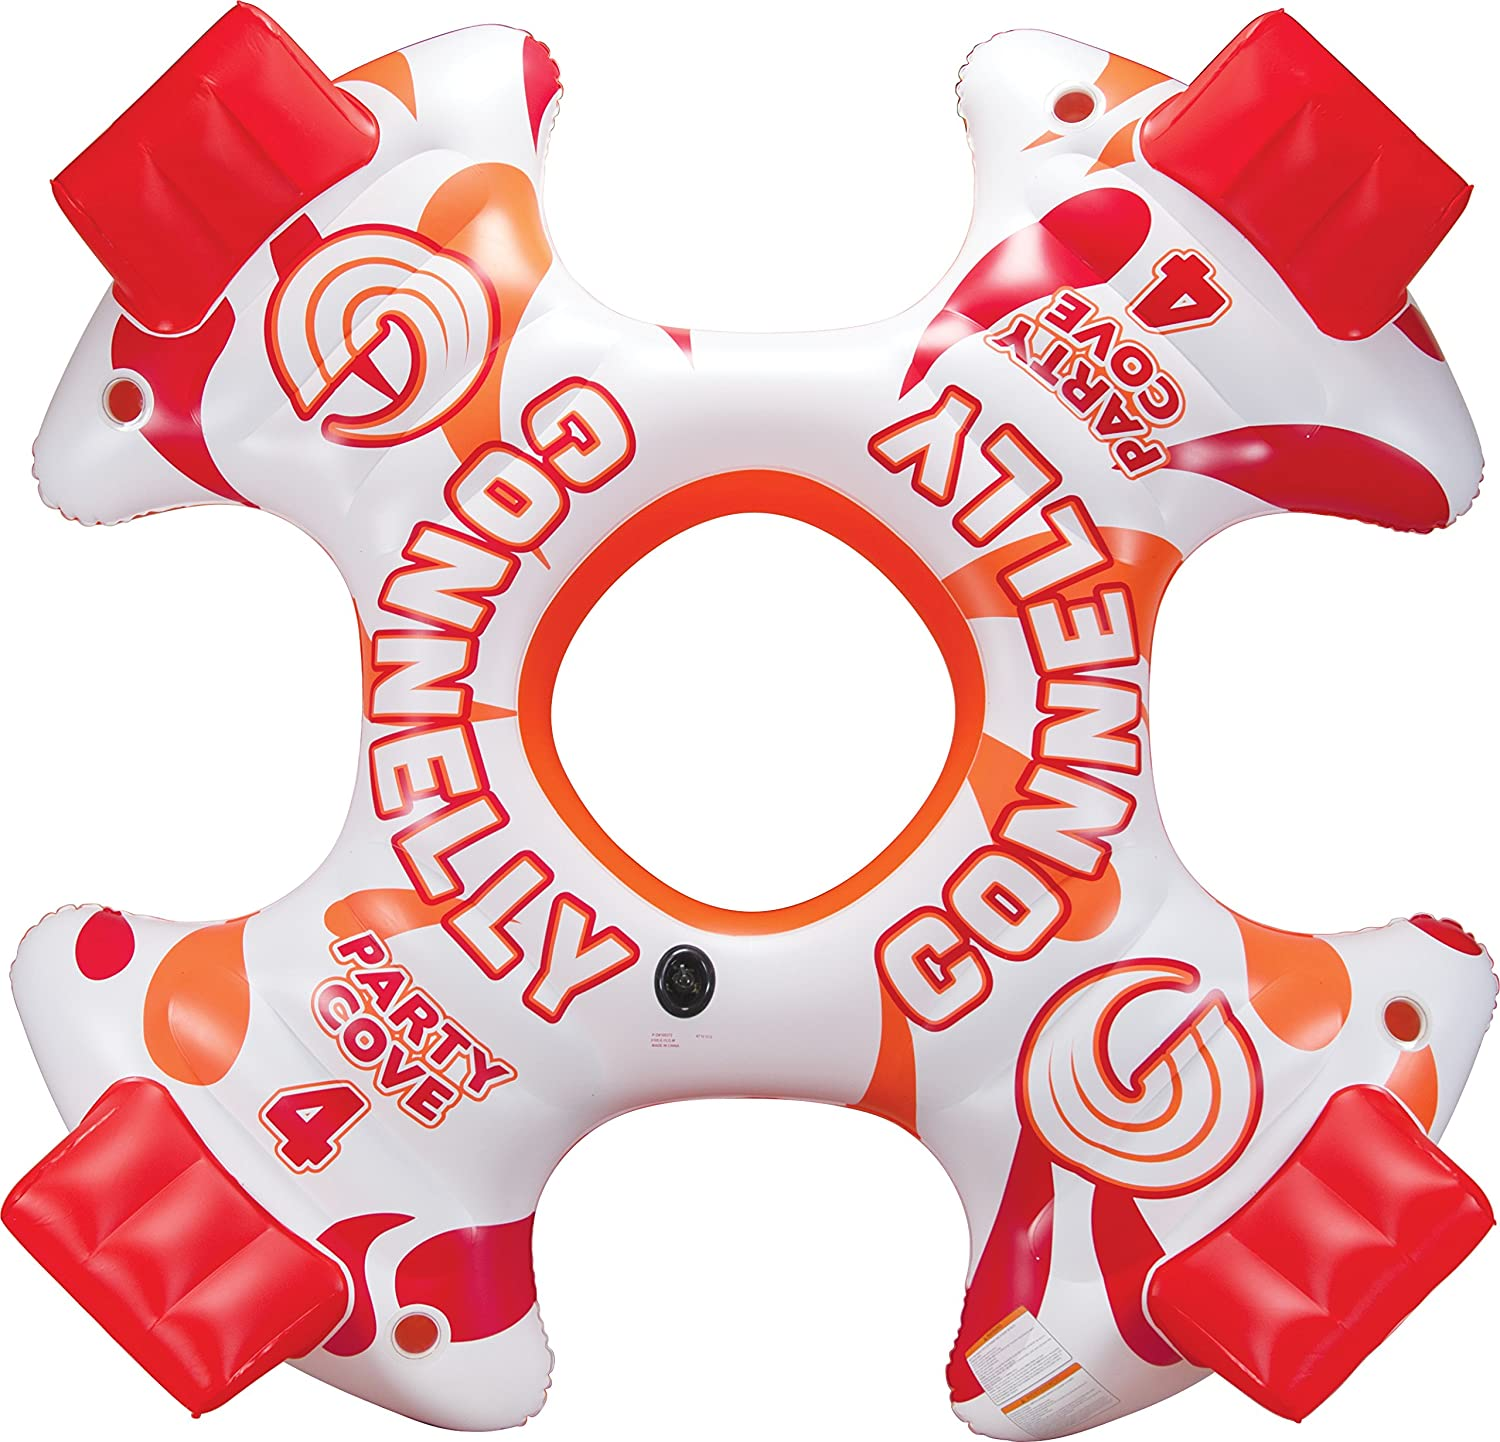 Connelly Luxury goods 4 Party Cove Inflatable Rafts Cheap mail order shopping